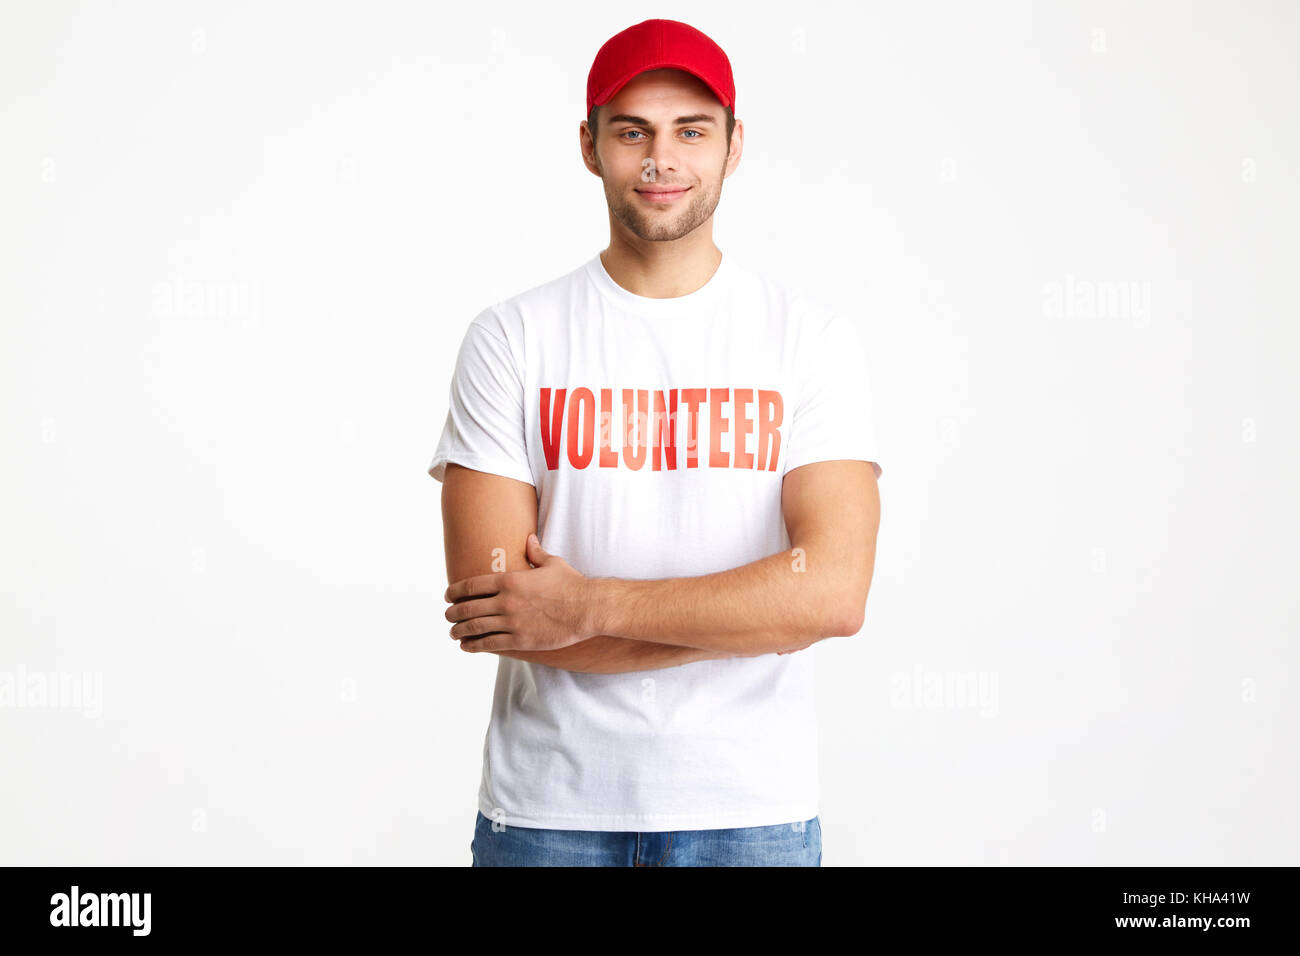 Portrait of a confident smiling man wearing volunteer t-shirt standing with arms folded and looking at camera isolated - Stock Image